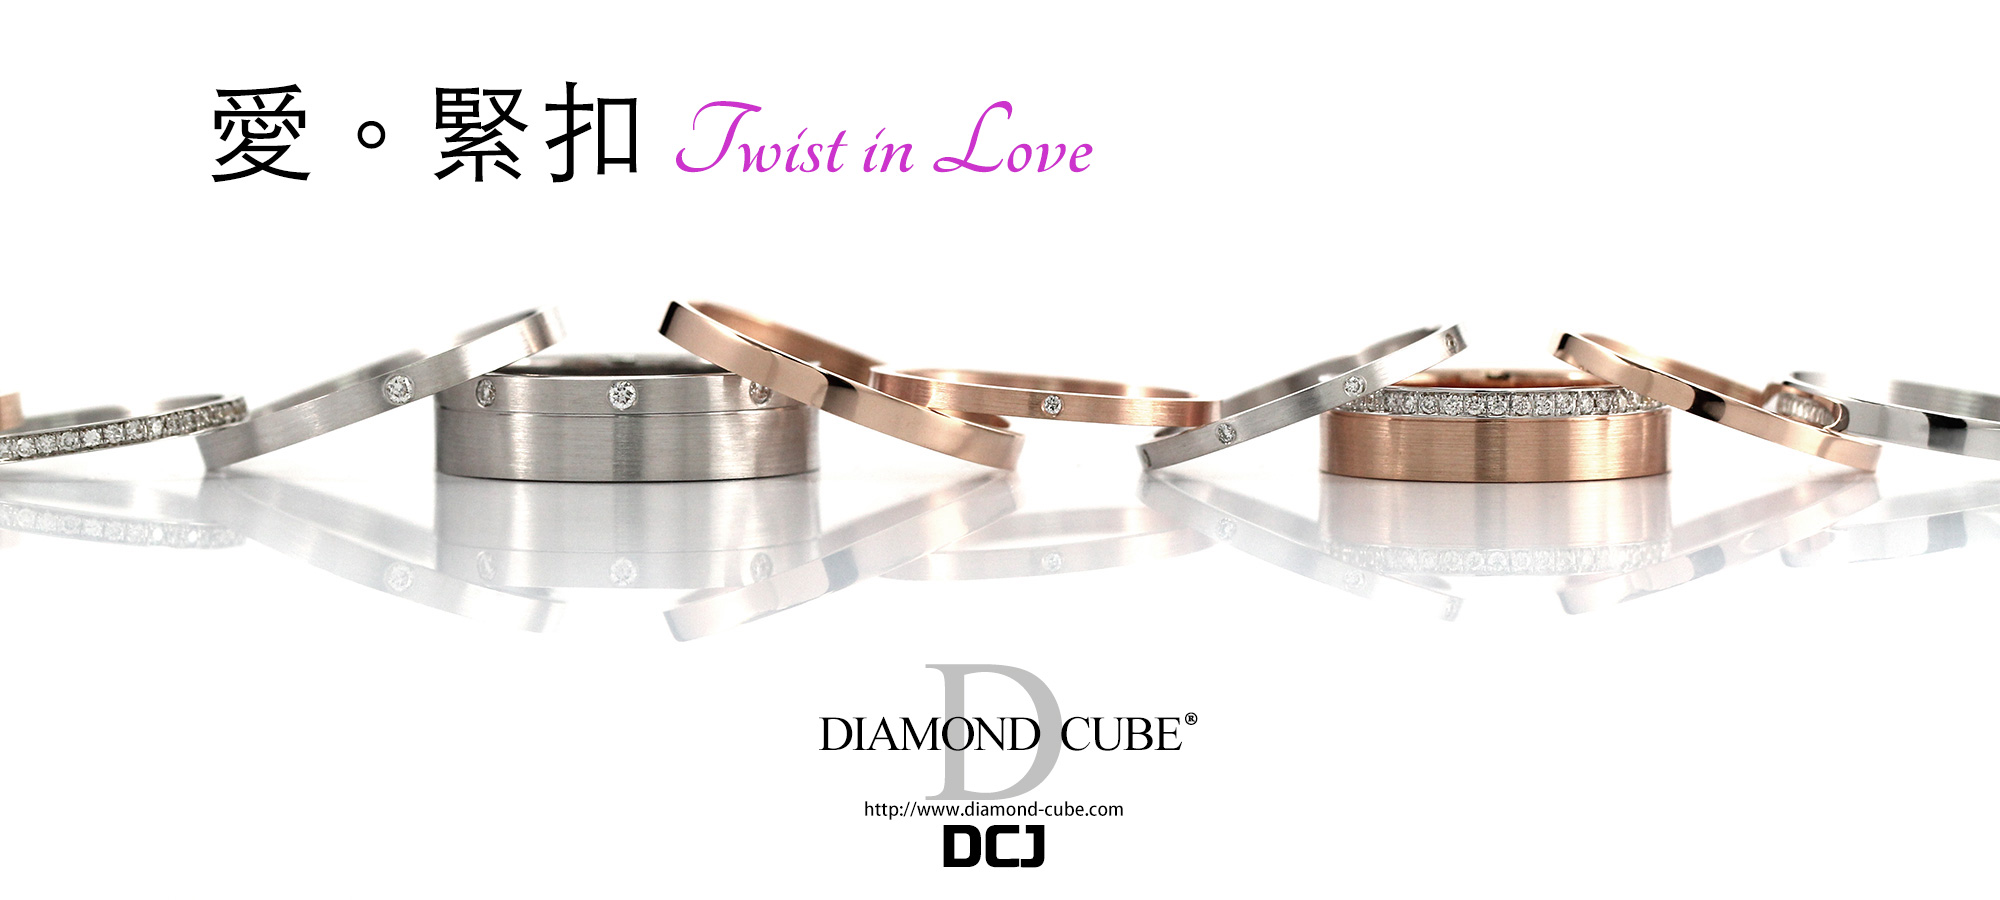 Diamond Cube - 婚戒 - Special - Twist in Love